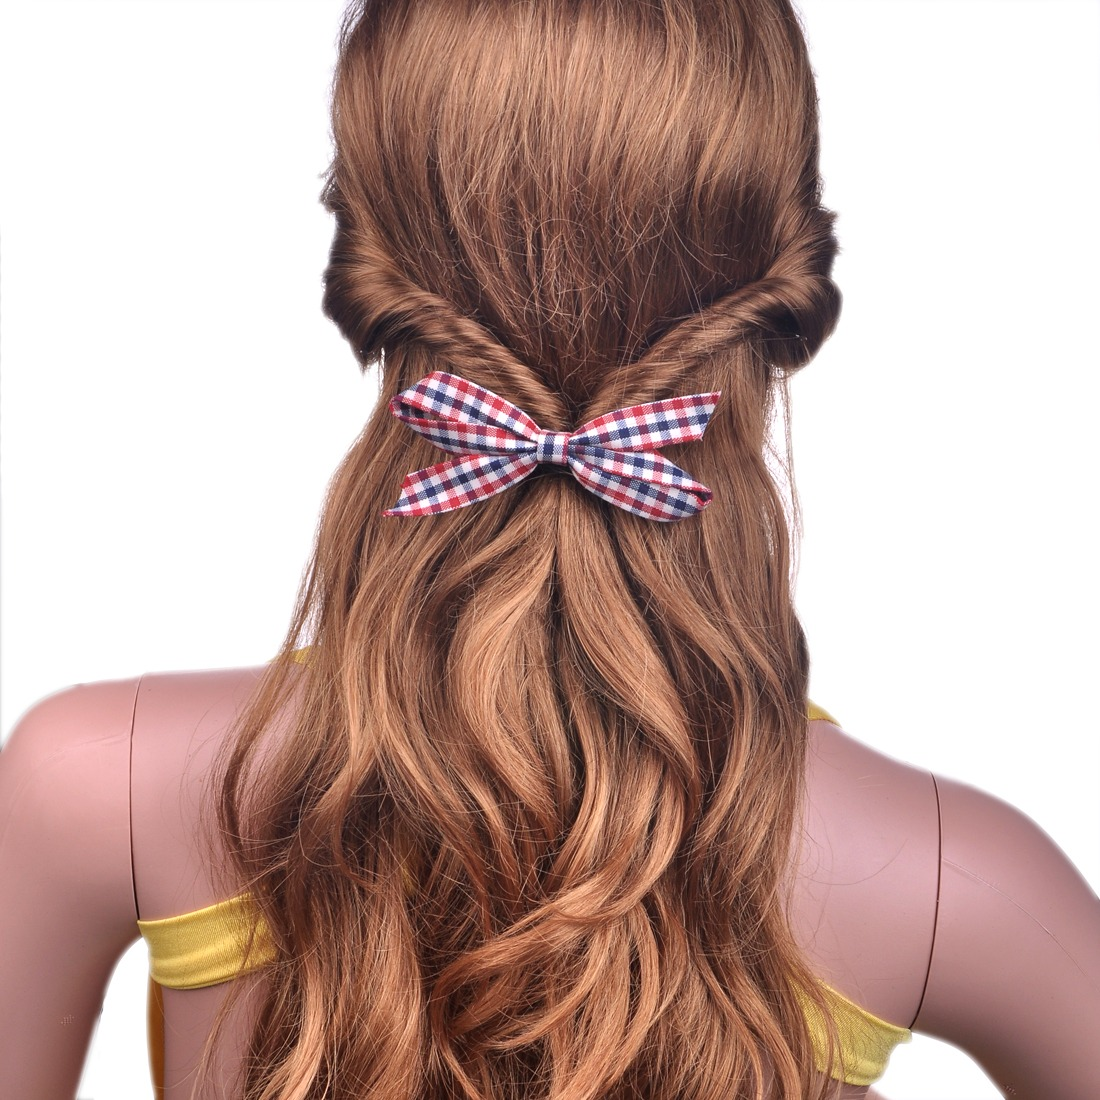 Checked Plaid Bow Bowknot Scrunchie Ponytail Holder For Girls For Thick Hair